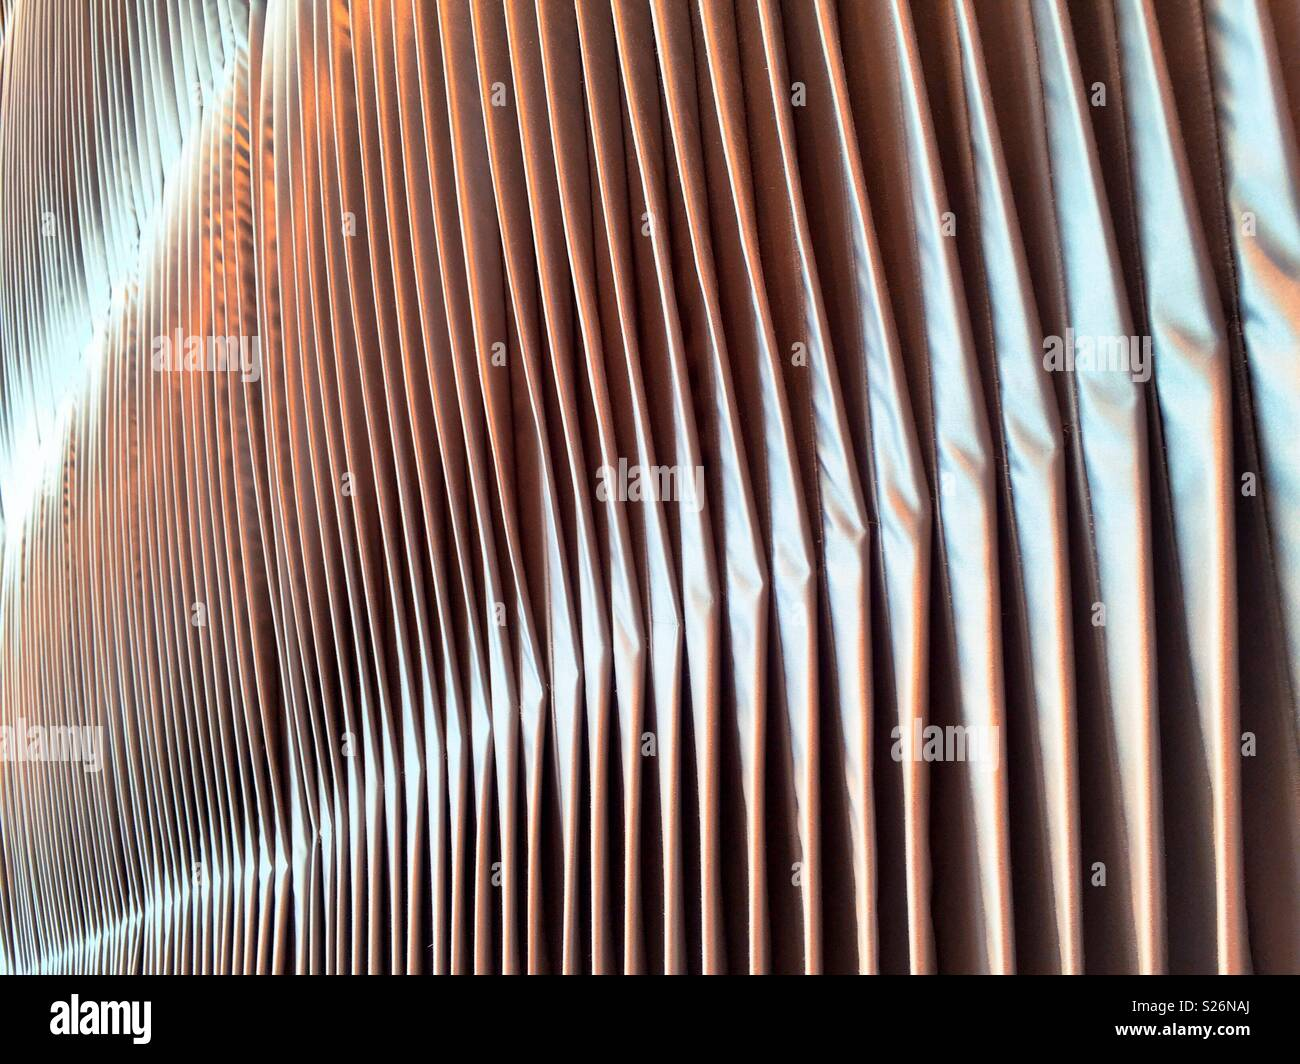 Textured pleated fabric close up - Stock Image